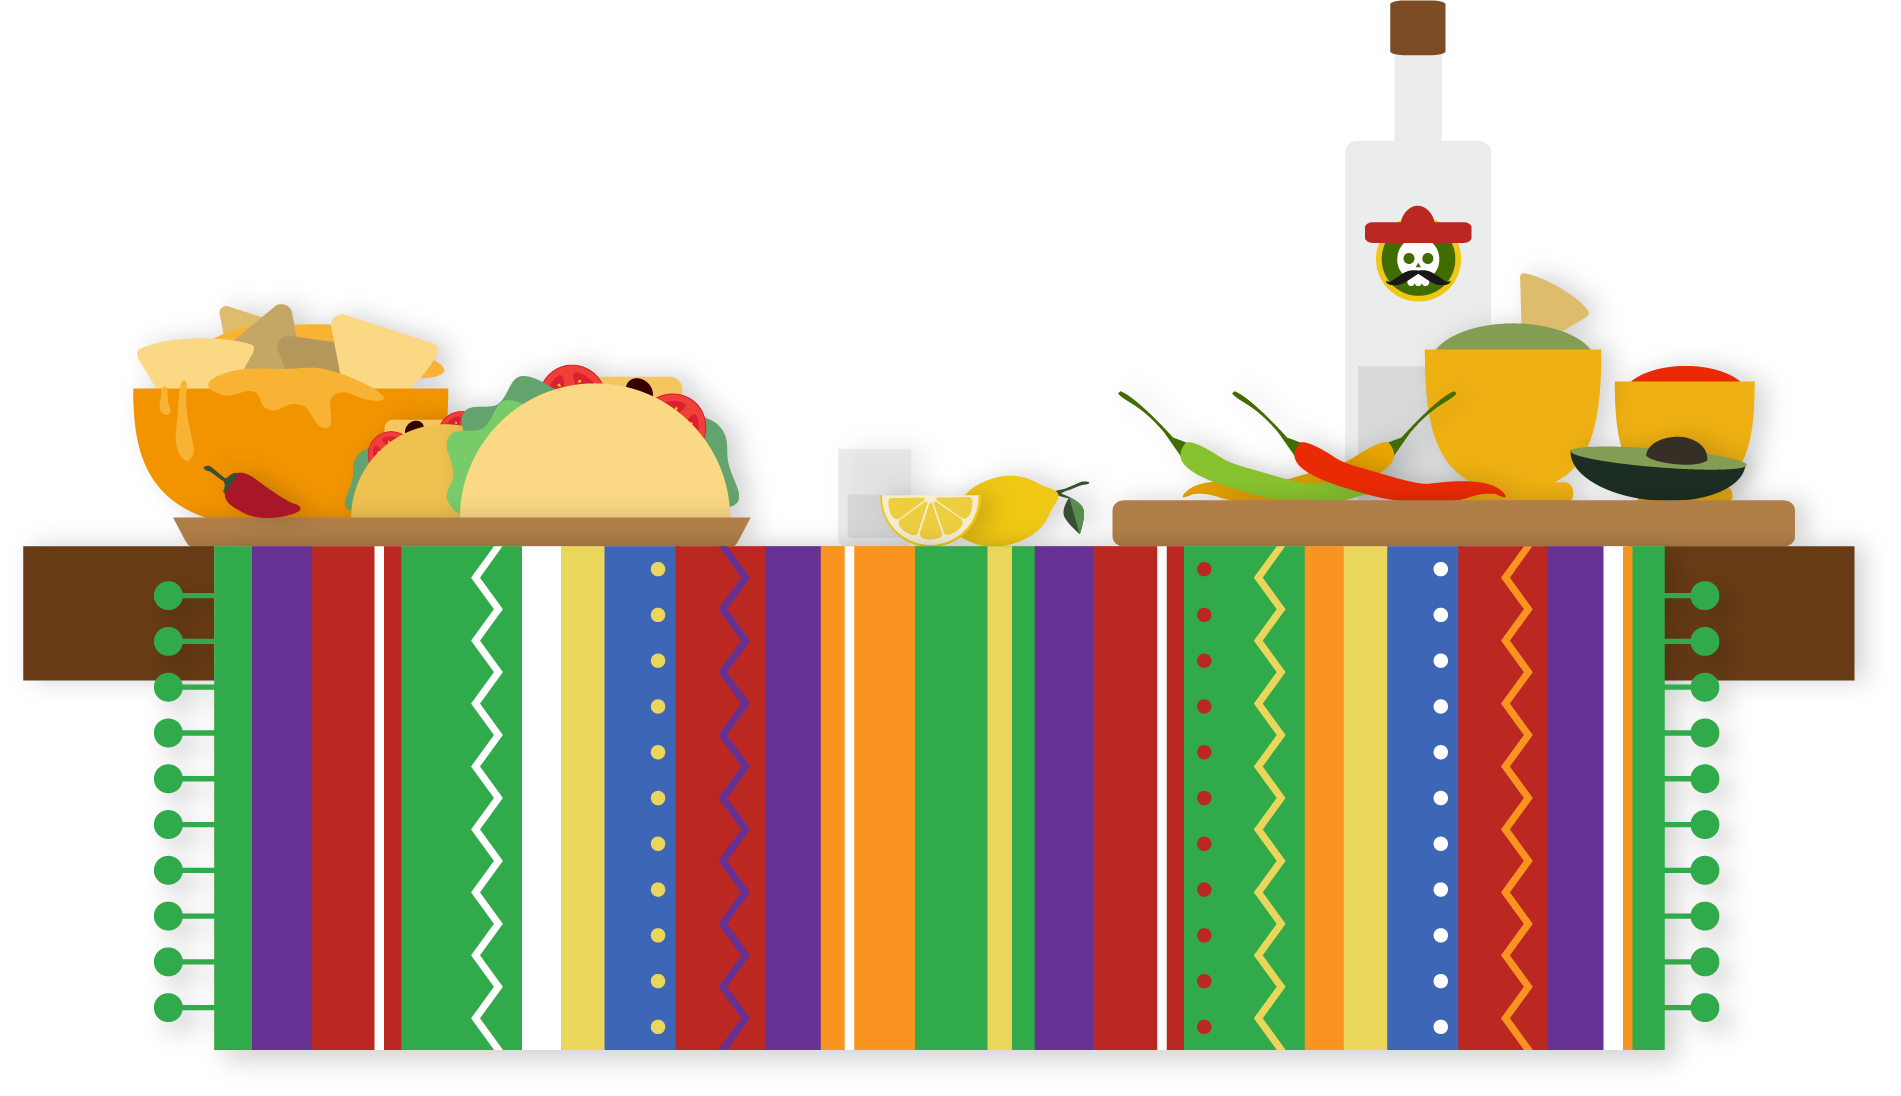 Tacos clipart tequila. Margarita mexican cuisine wedding